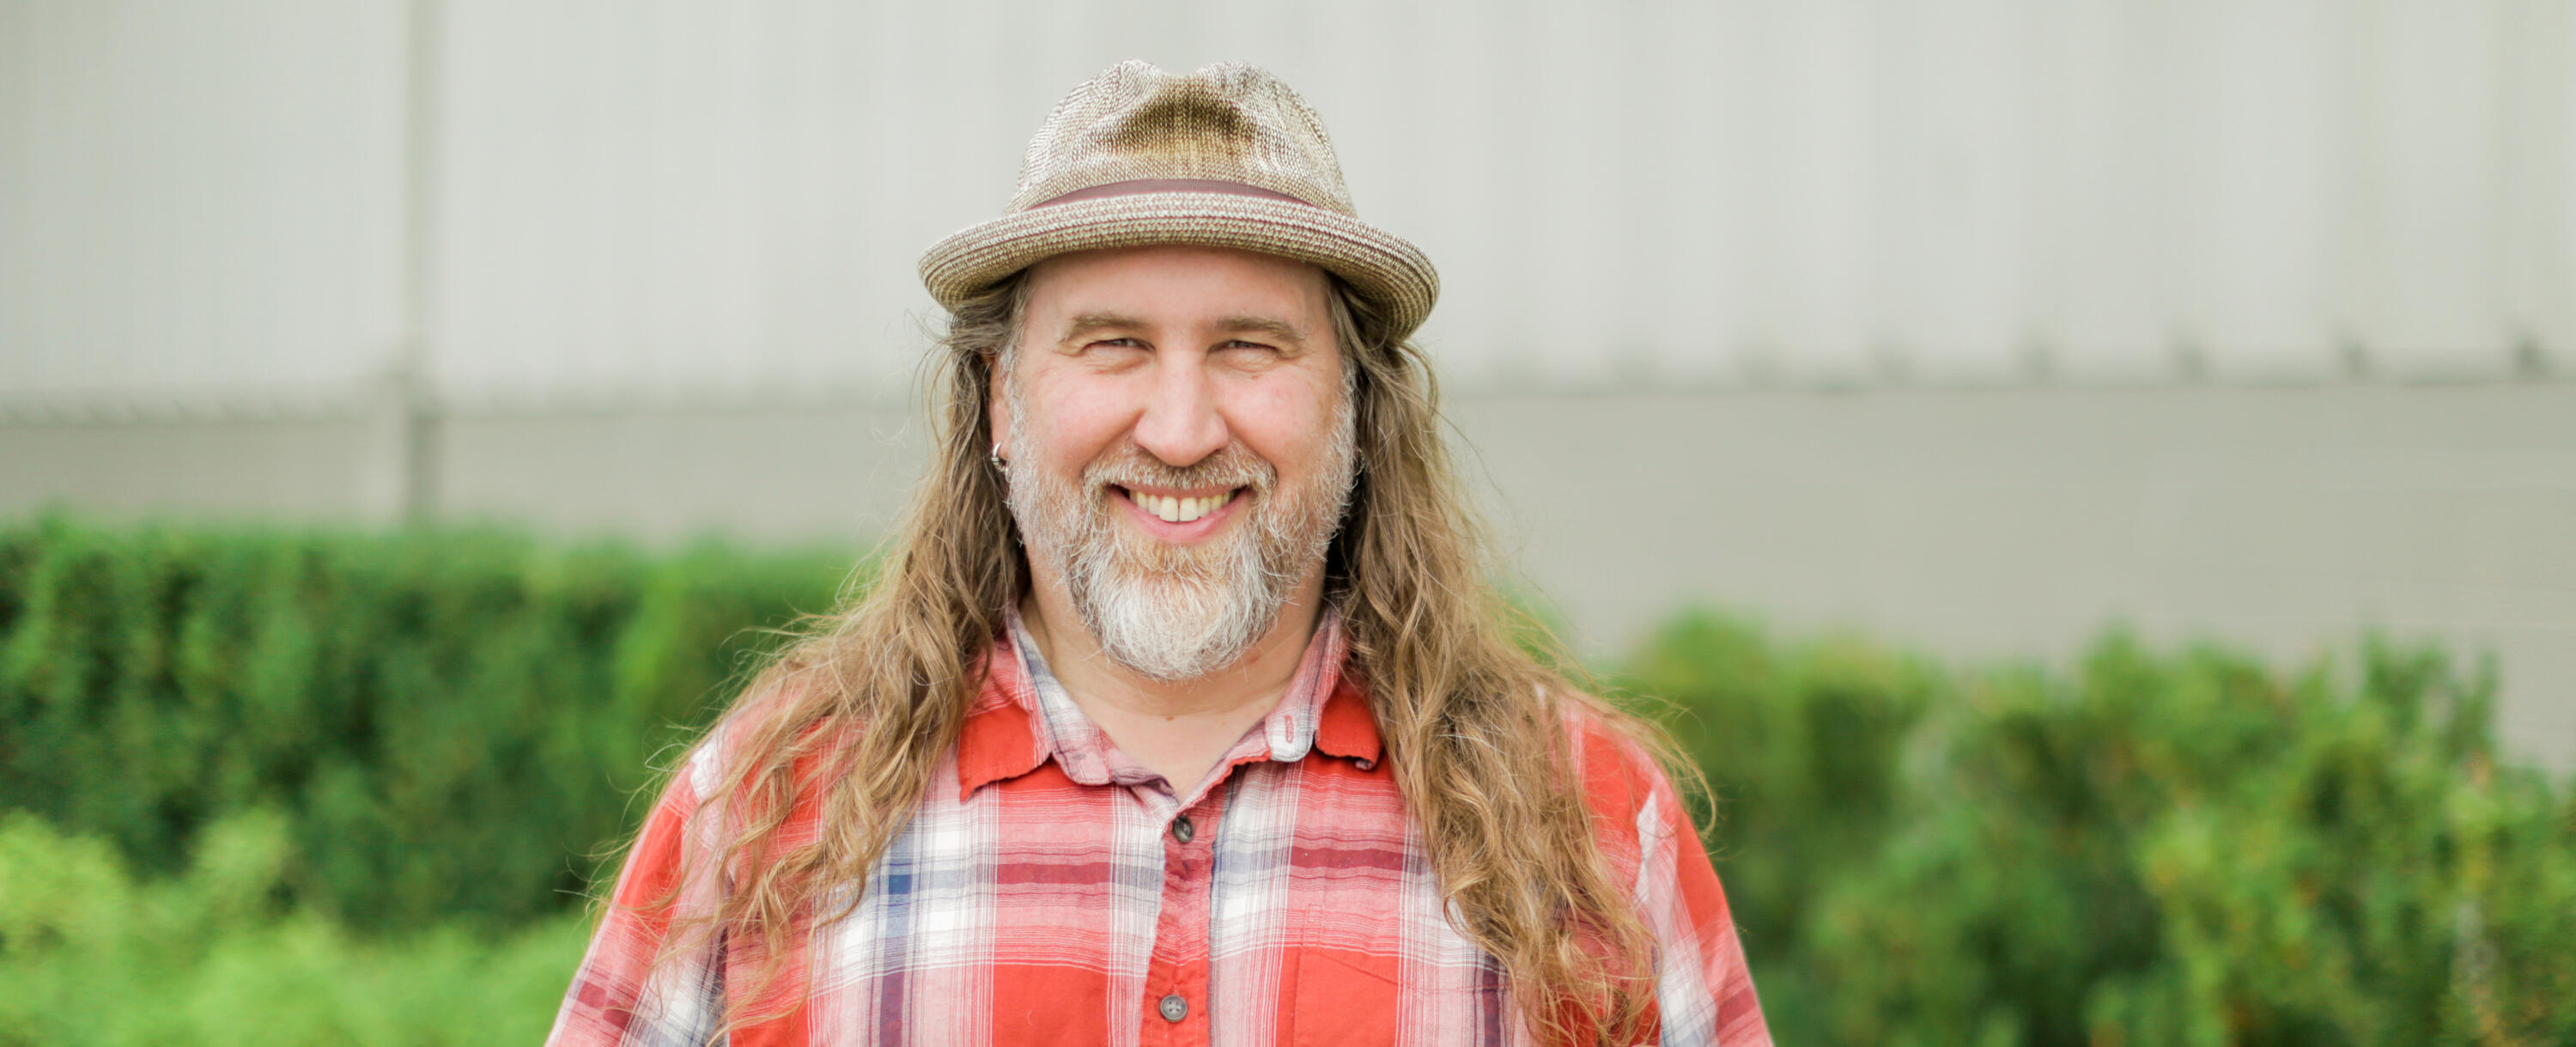 Bruxy Cavey will teach course at Grebel